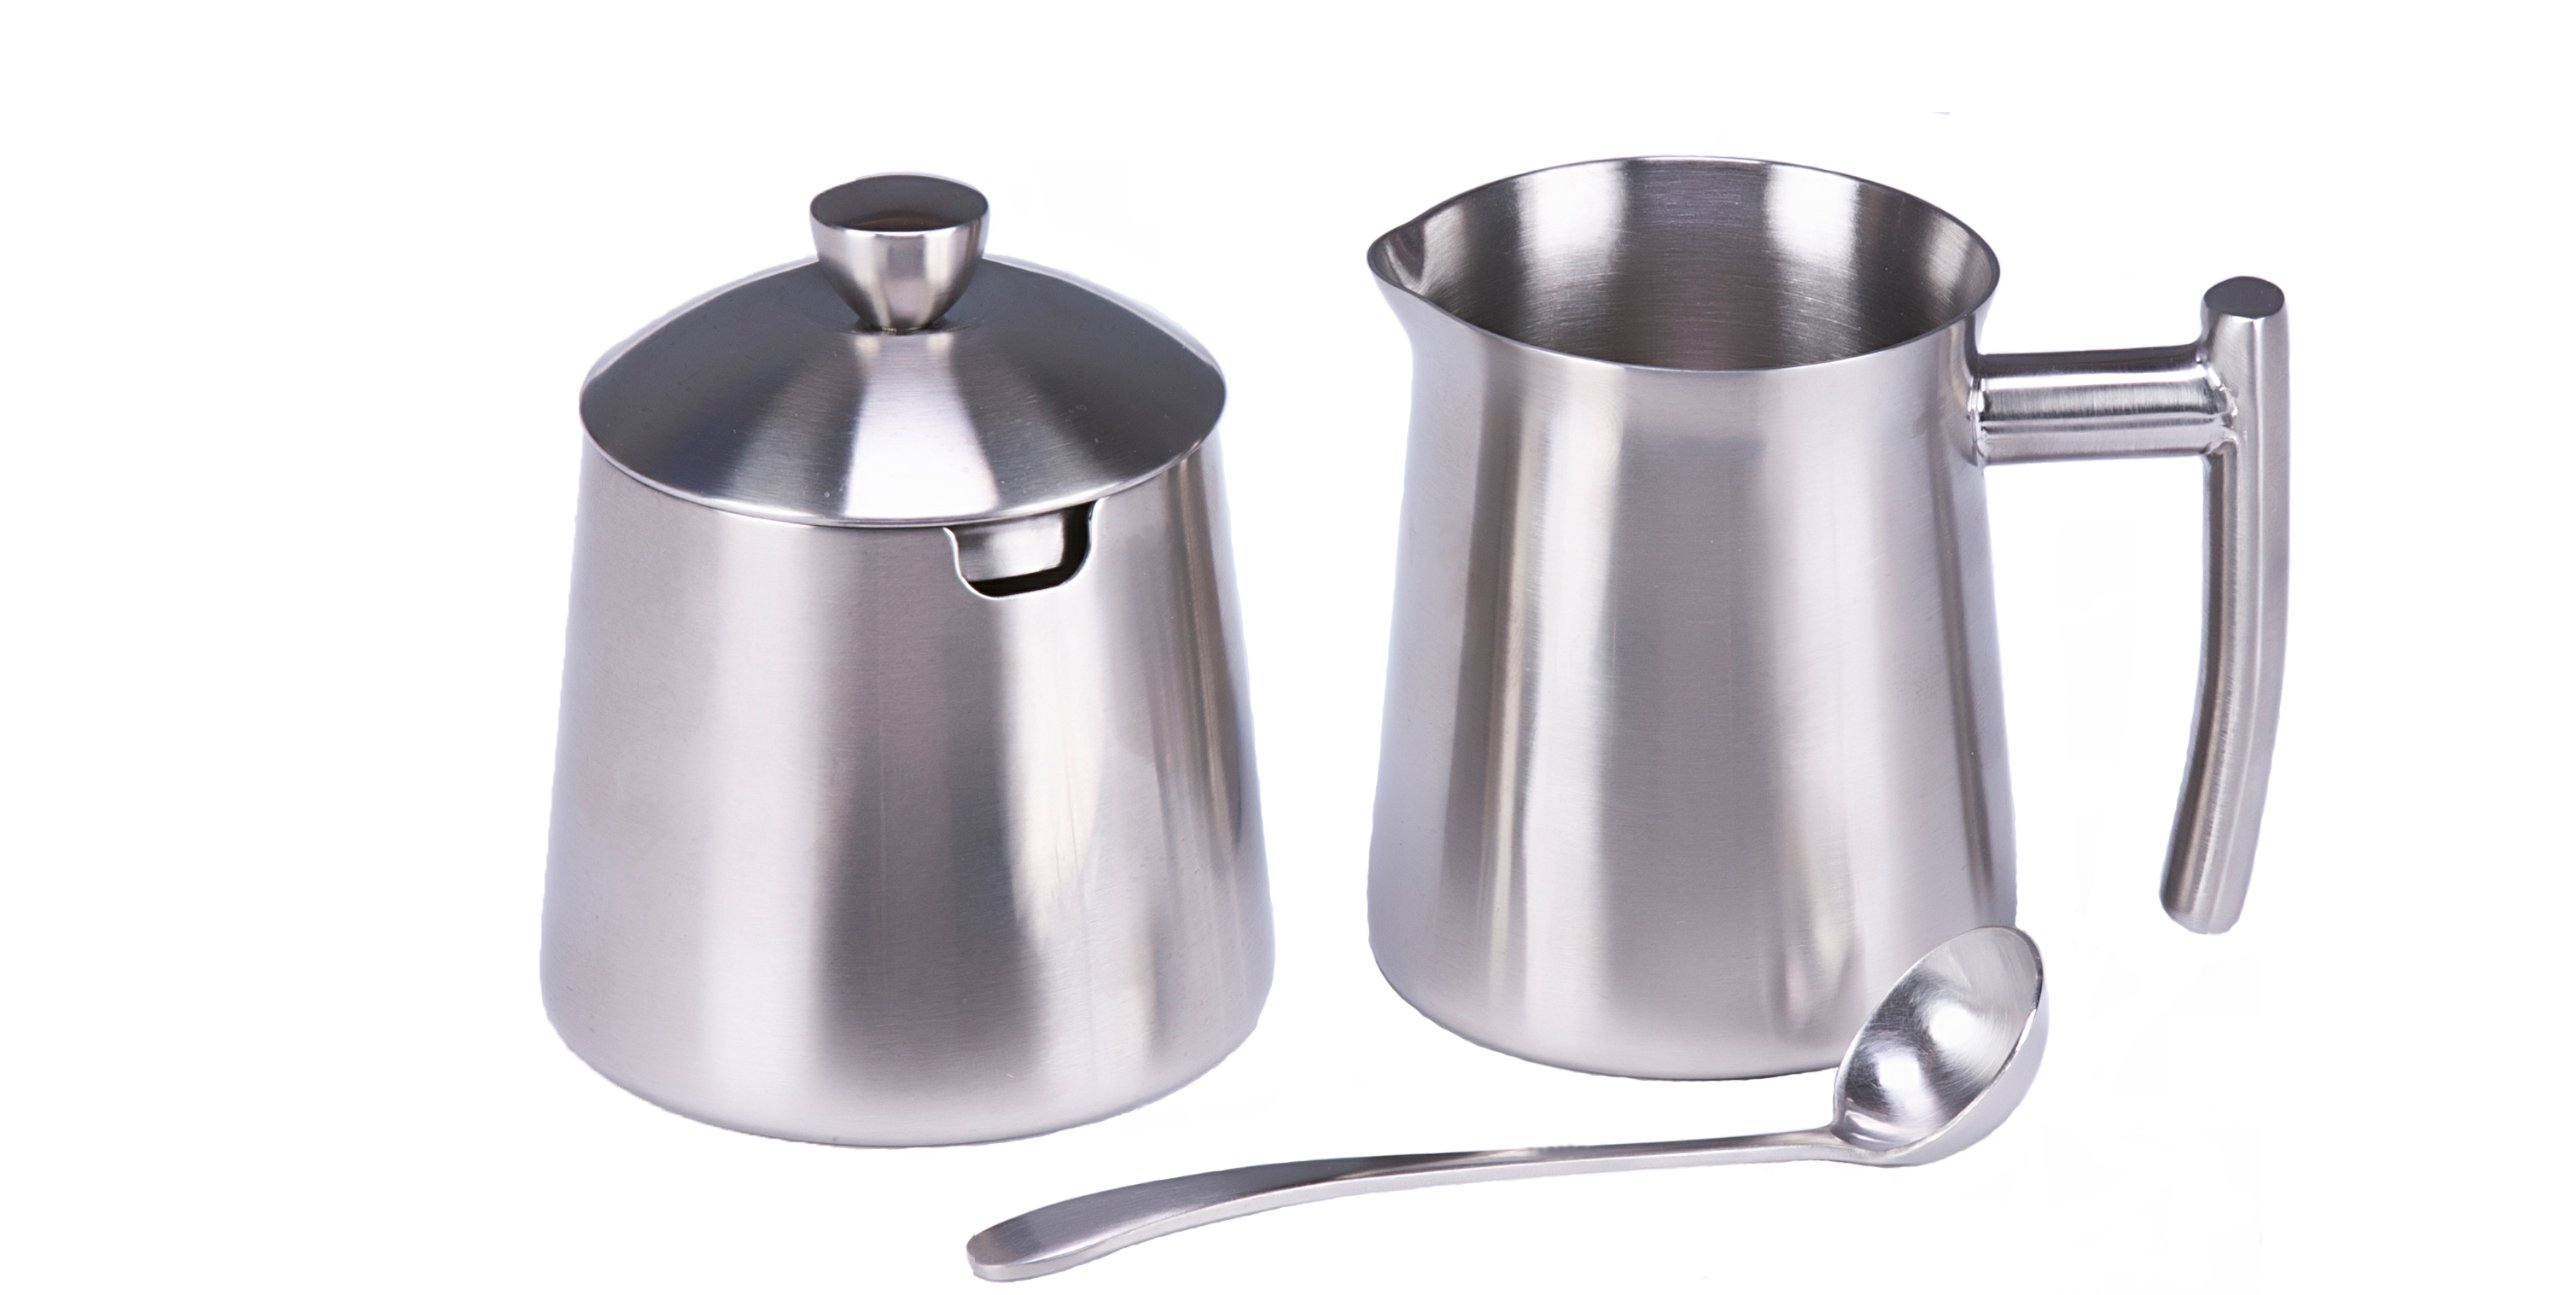 Frieling Brushed Stainless Steel Creamer & Sugar Bowl with Spoon Set